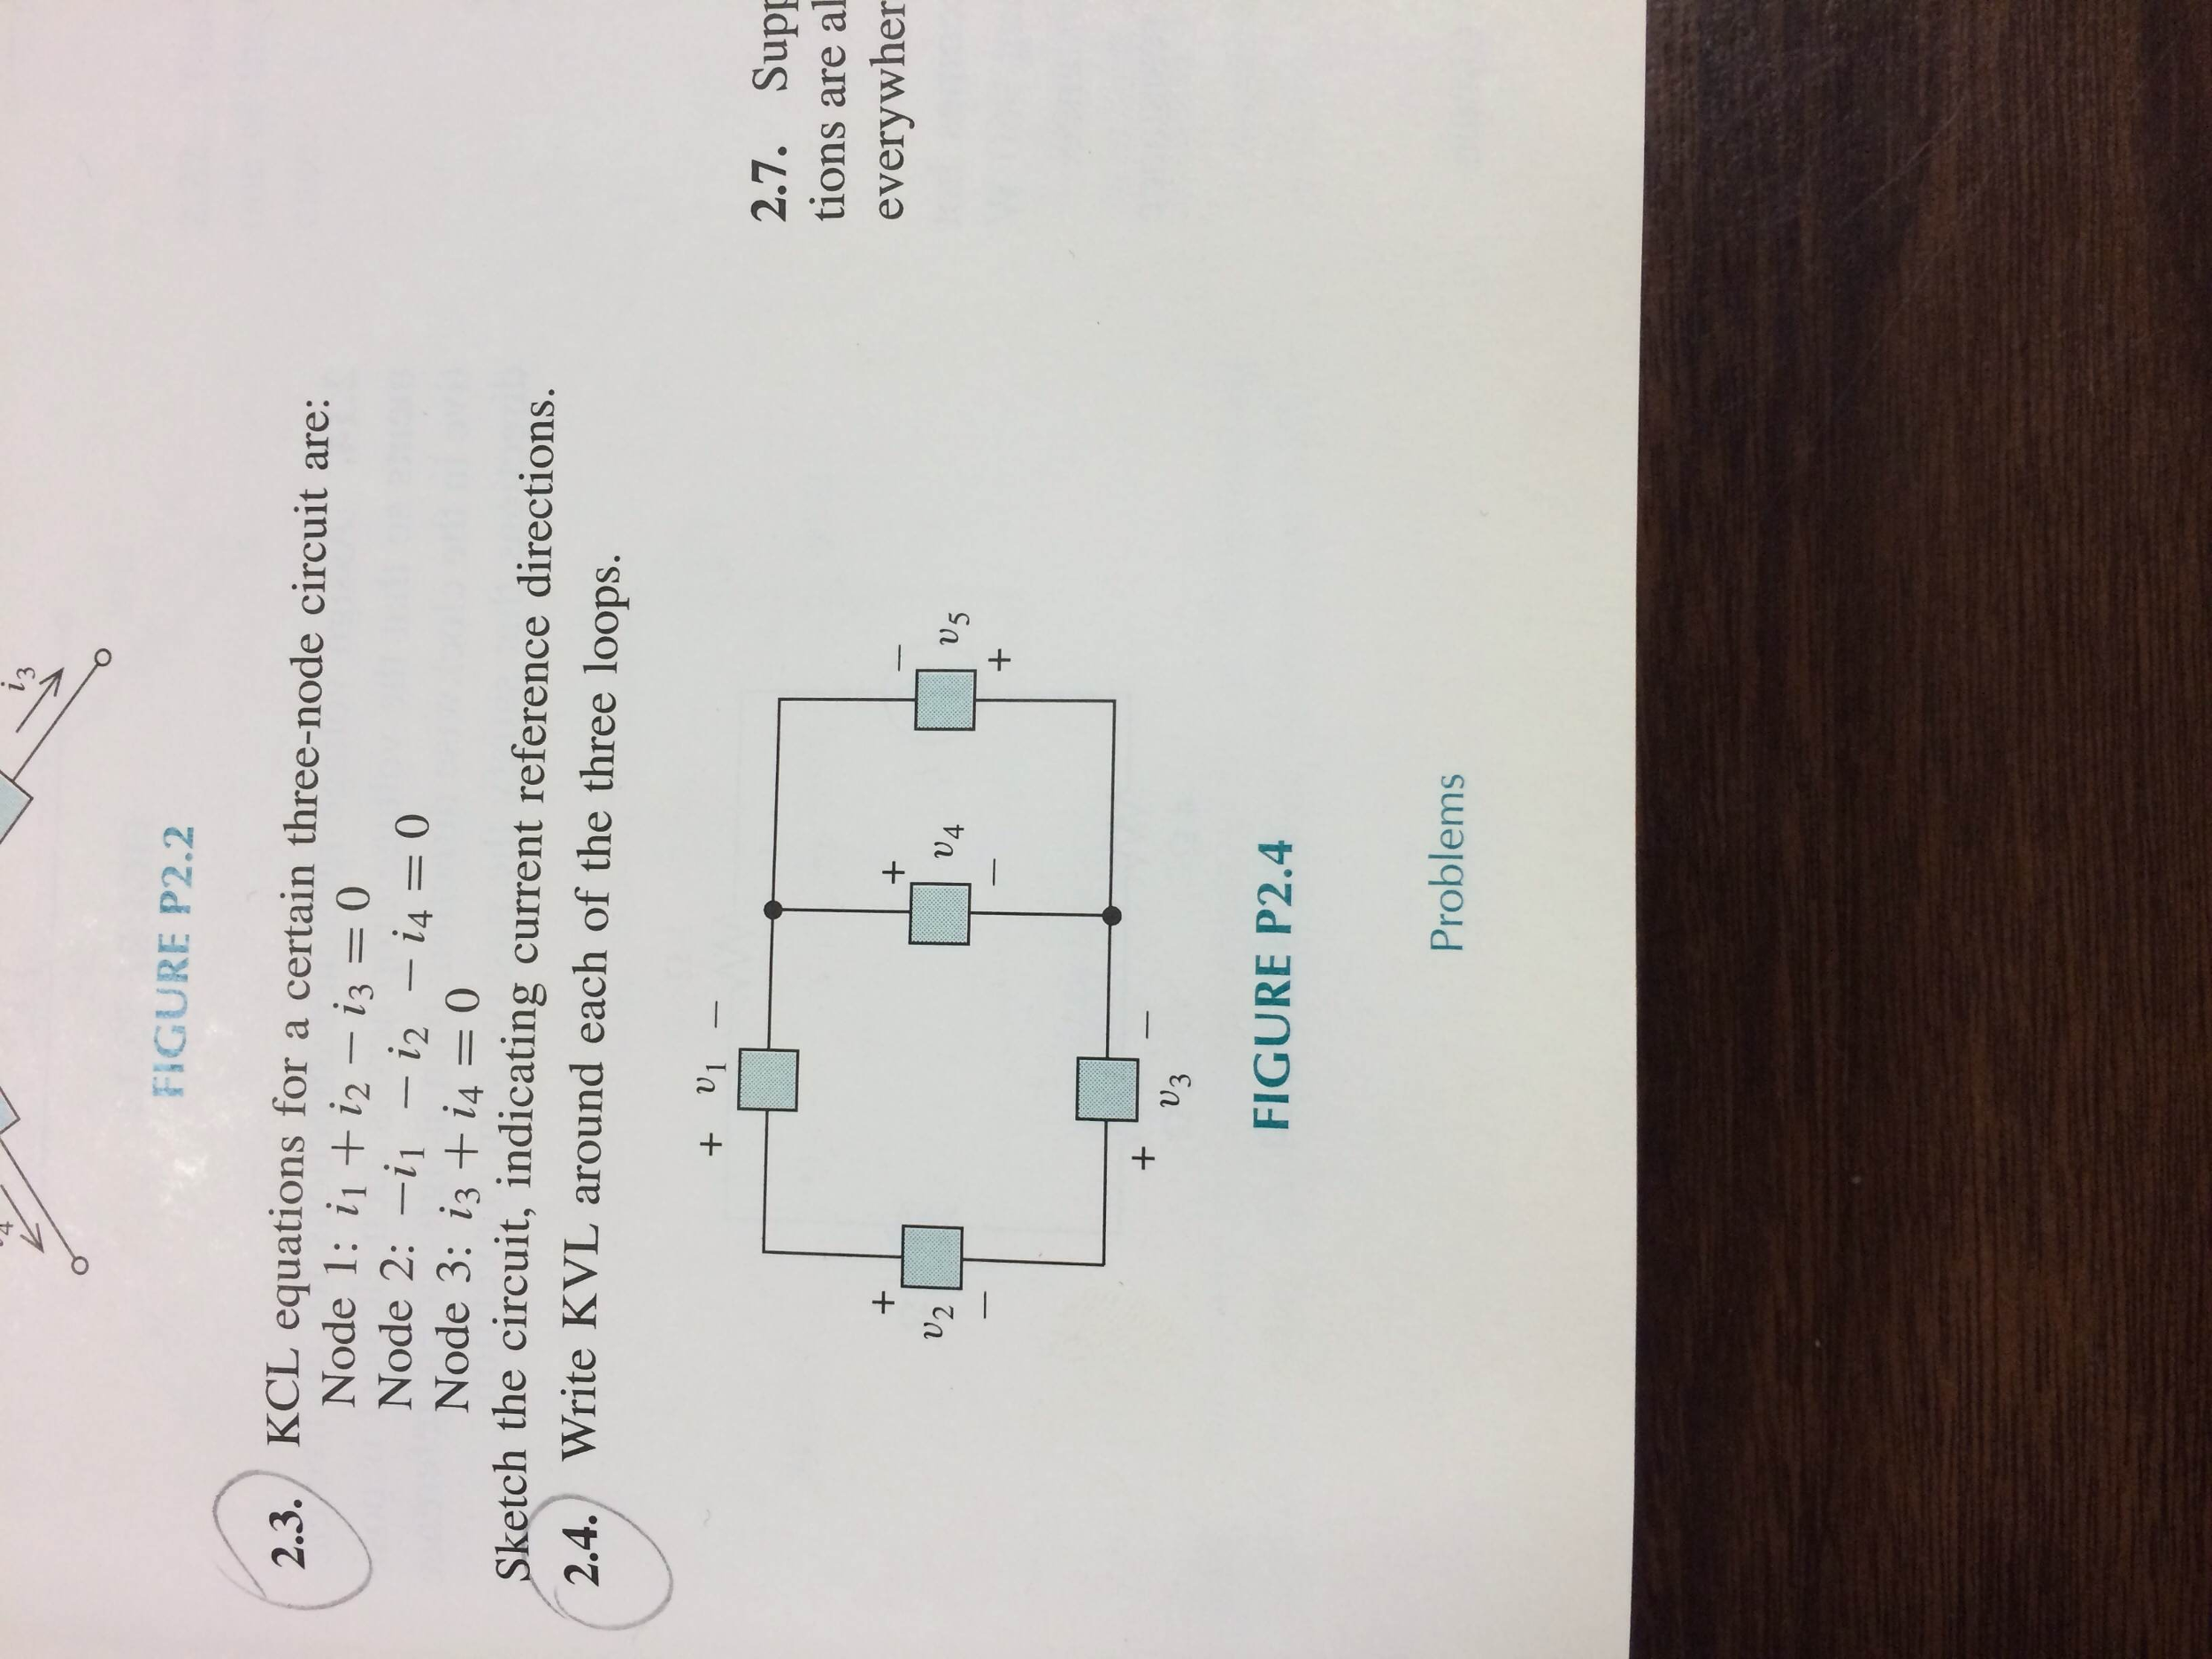 KCL equations for a certain three-node circuit are